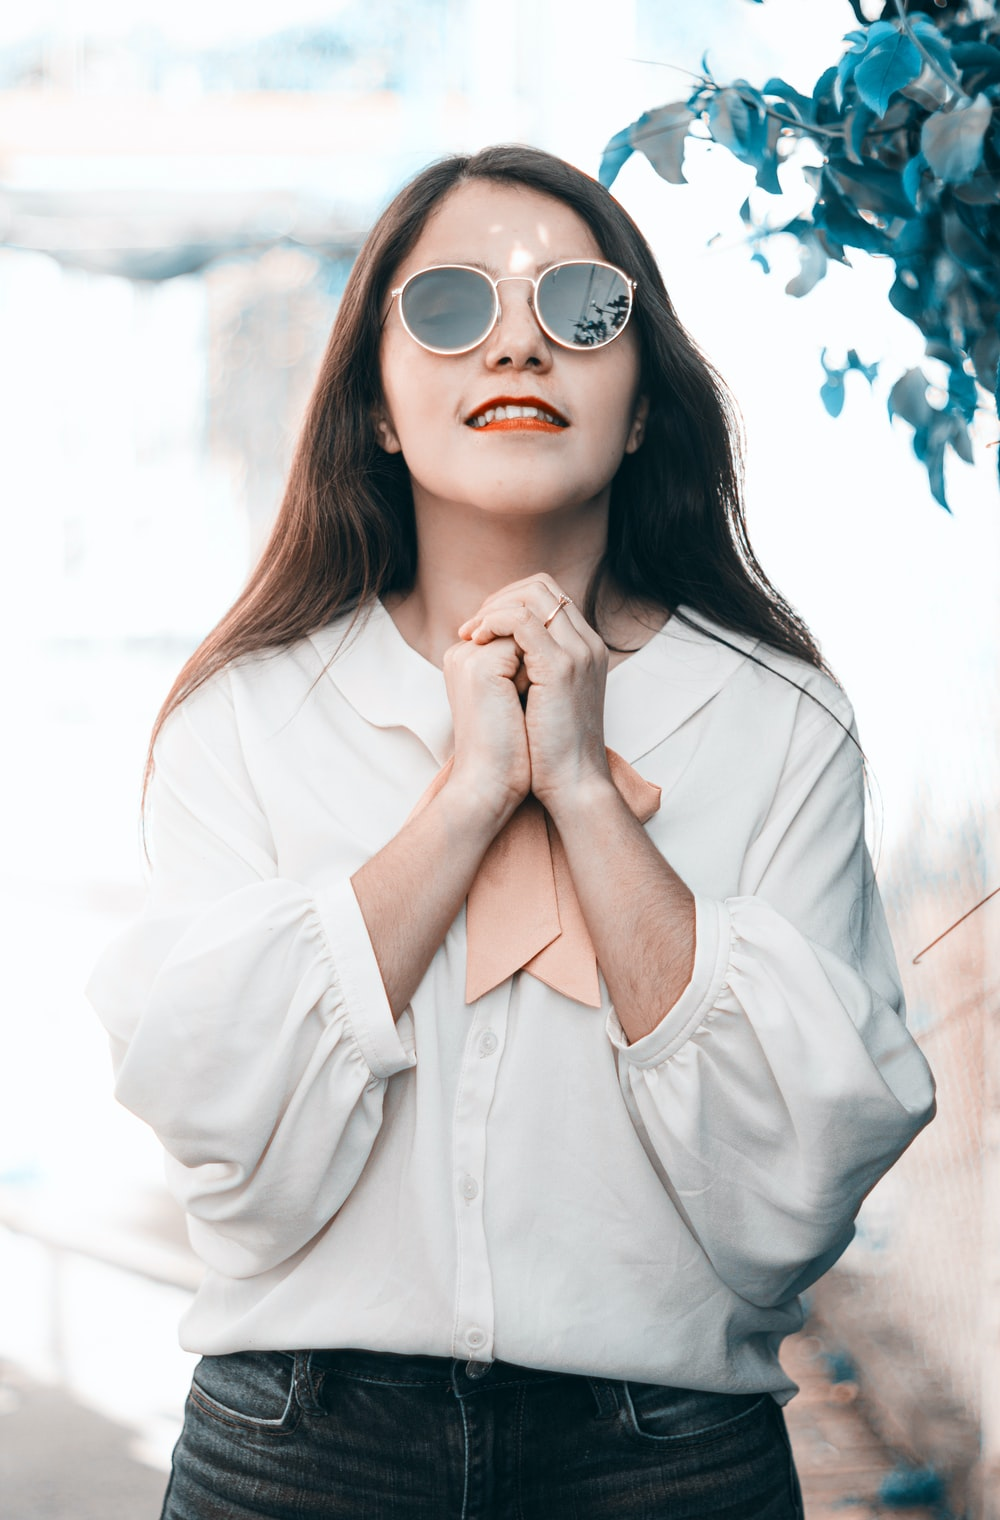 woman in white long sleeve shirt wearing sunglasses